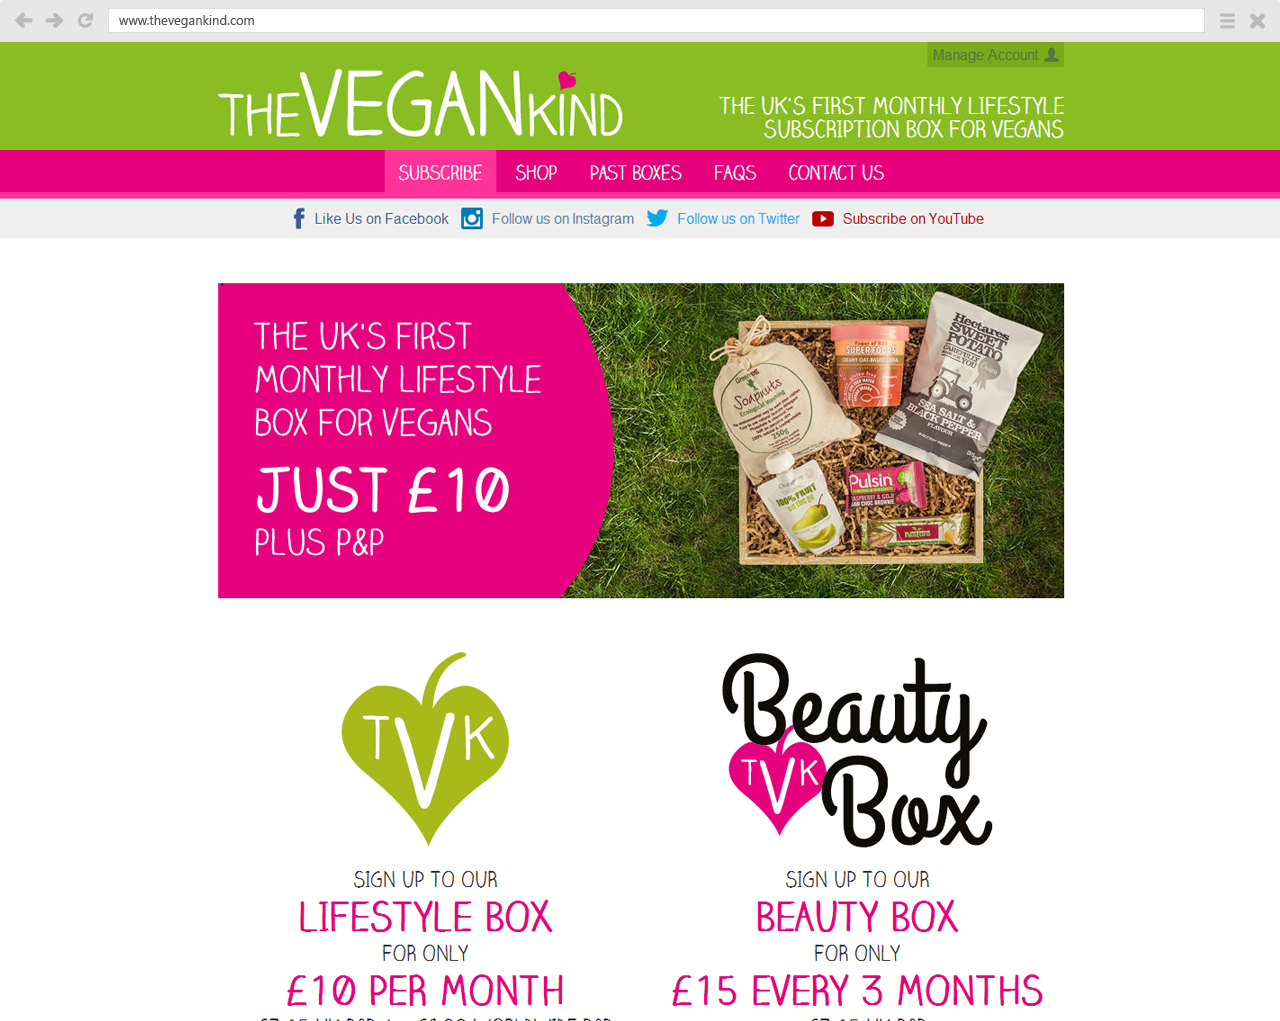 TheVeganKind Website